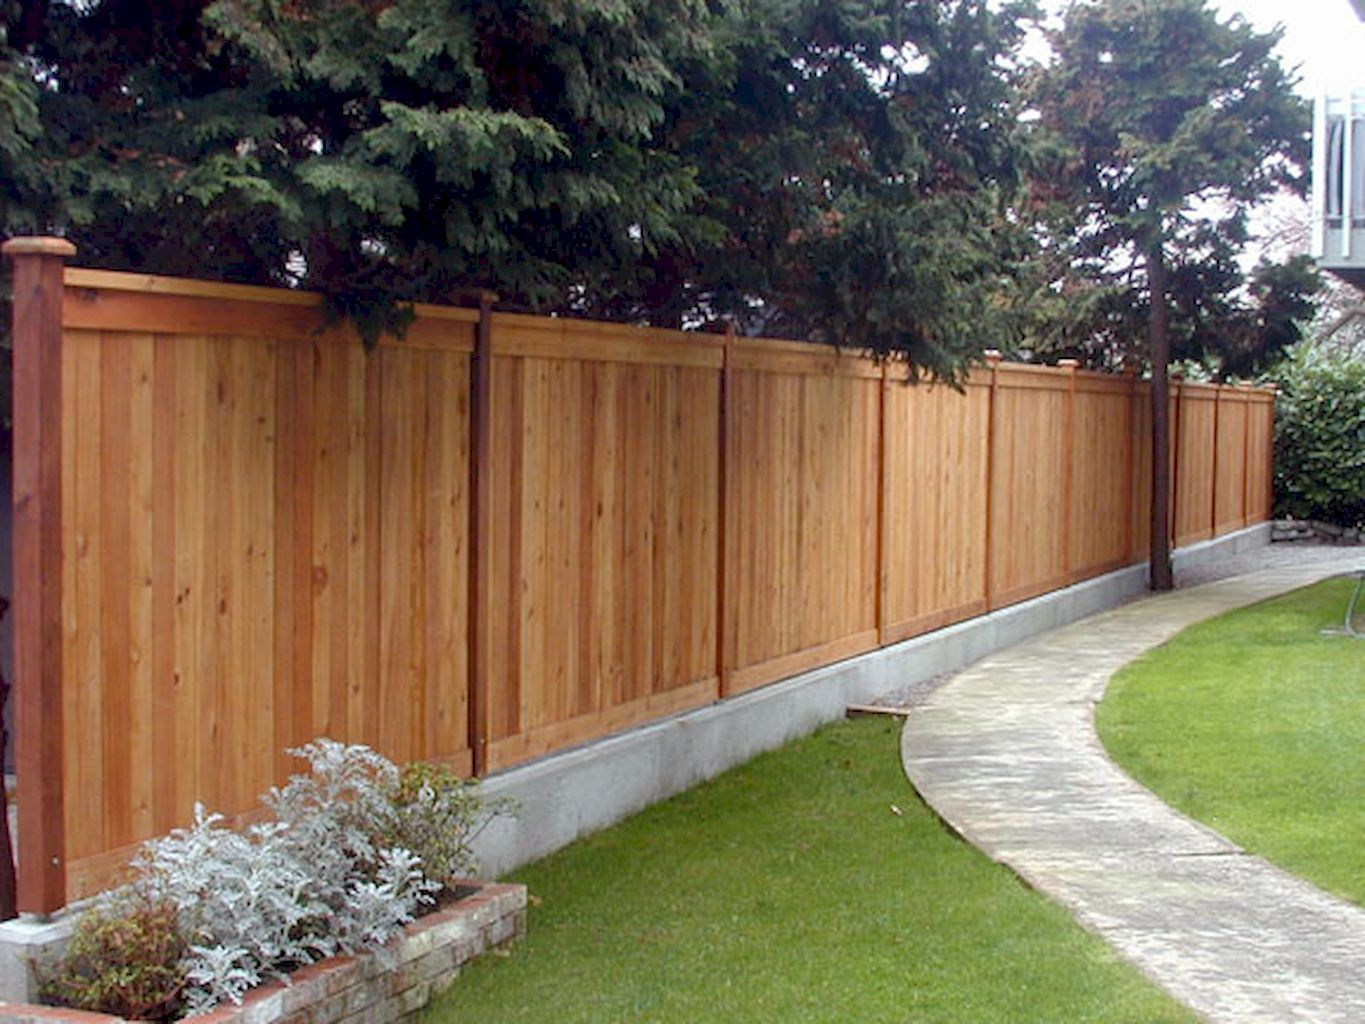 70 Wooden Privacy Fence Backyard Design Landscaping Ideas pertaining to 13 Clever Designs of How to Makeover Fencing For Backyard